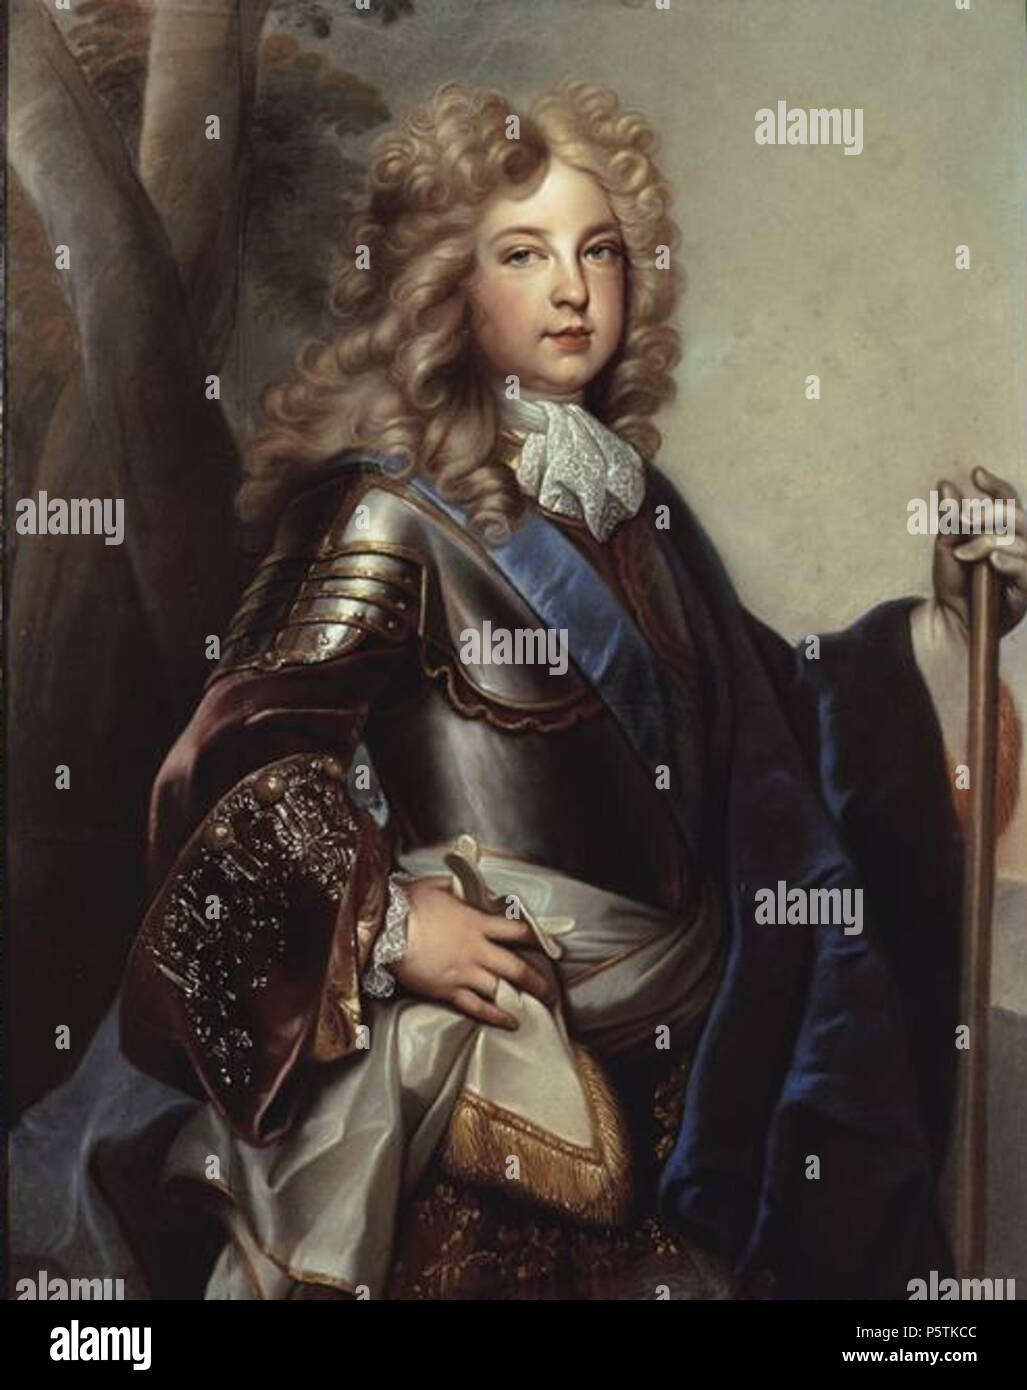 329 Charles of France, Duke of Berry in 1700 by an unknown